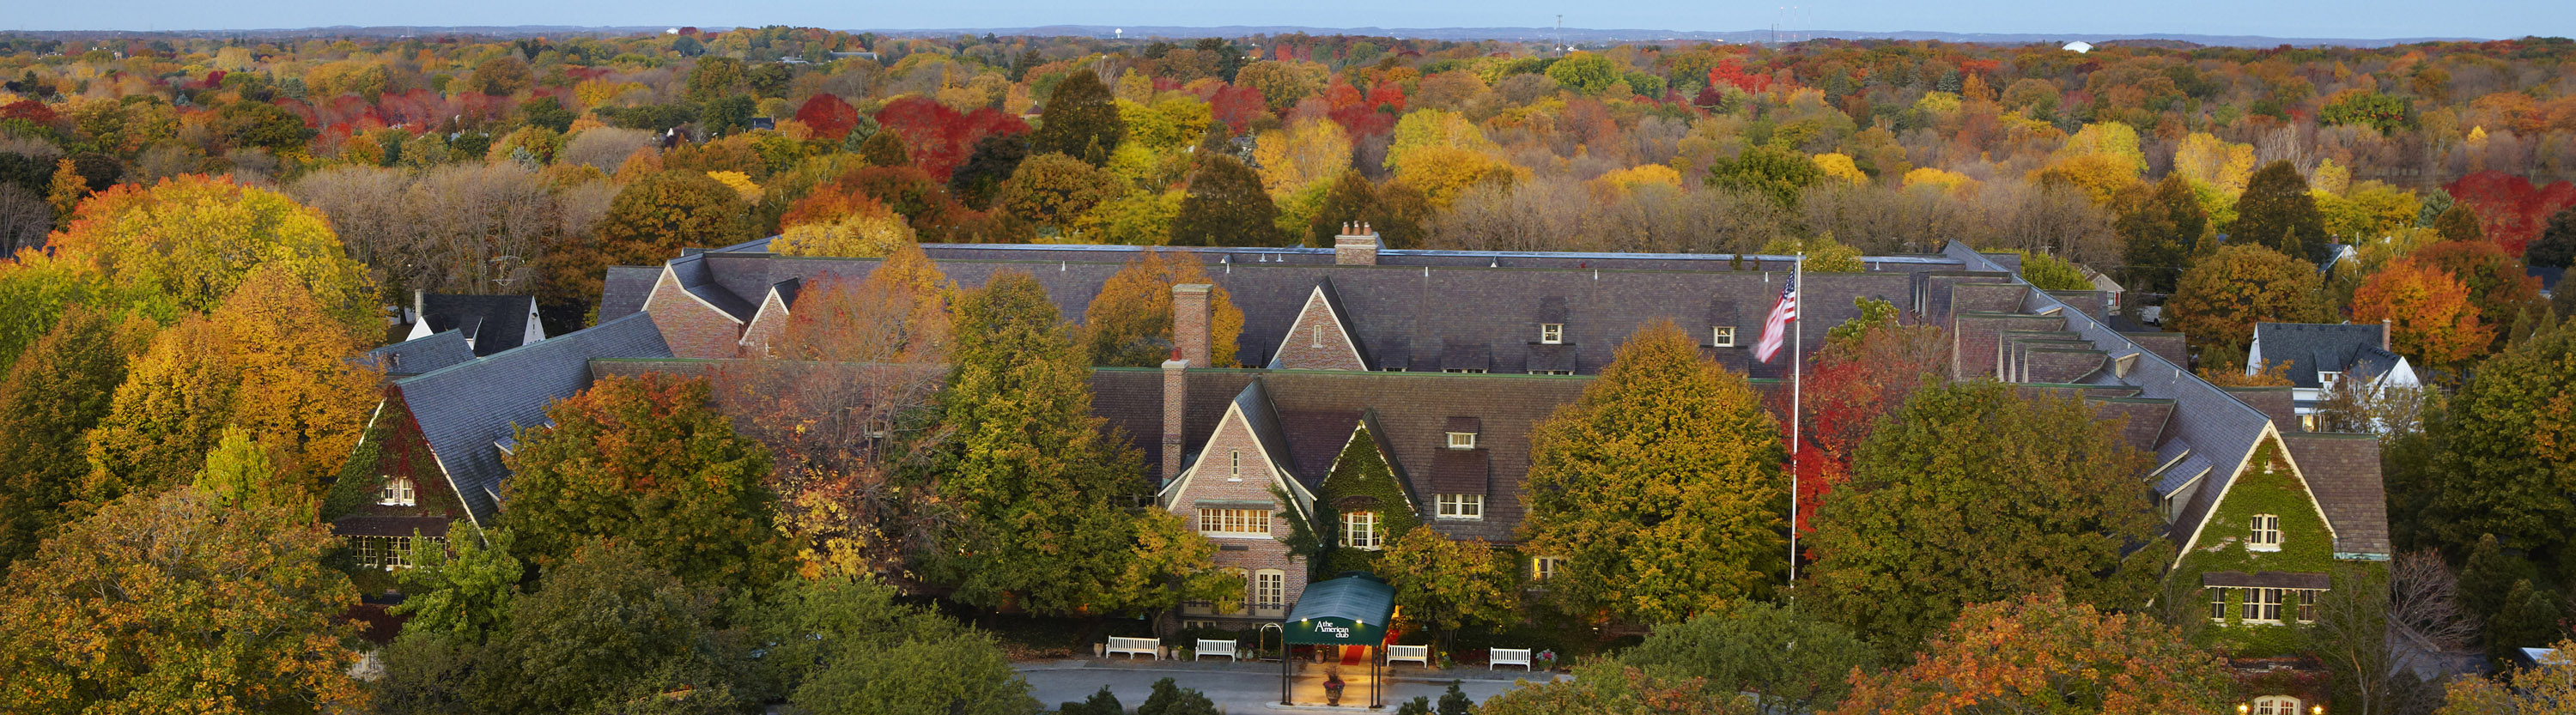 Elegant hotel surrounded by fall foliage